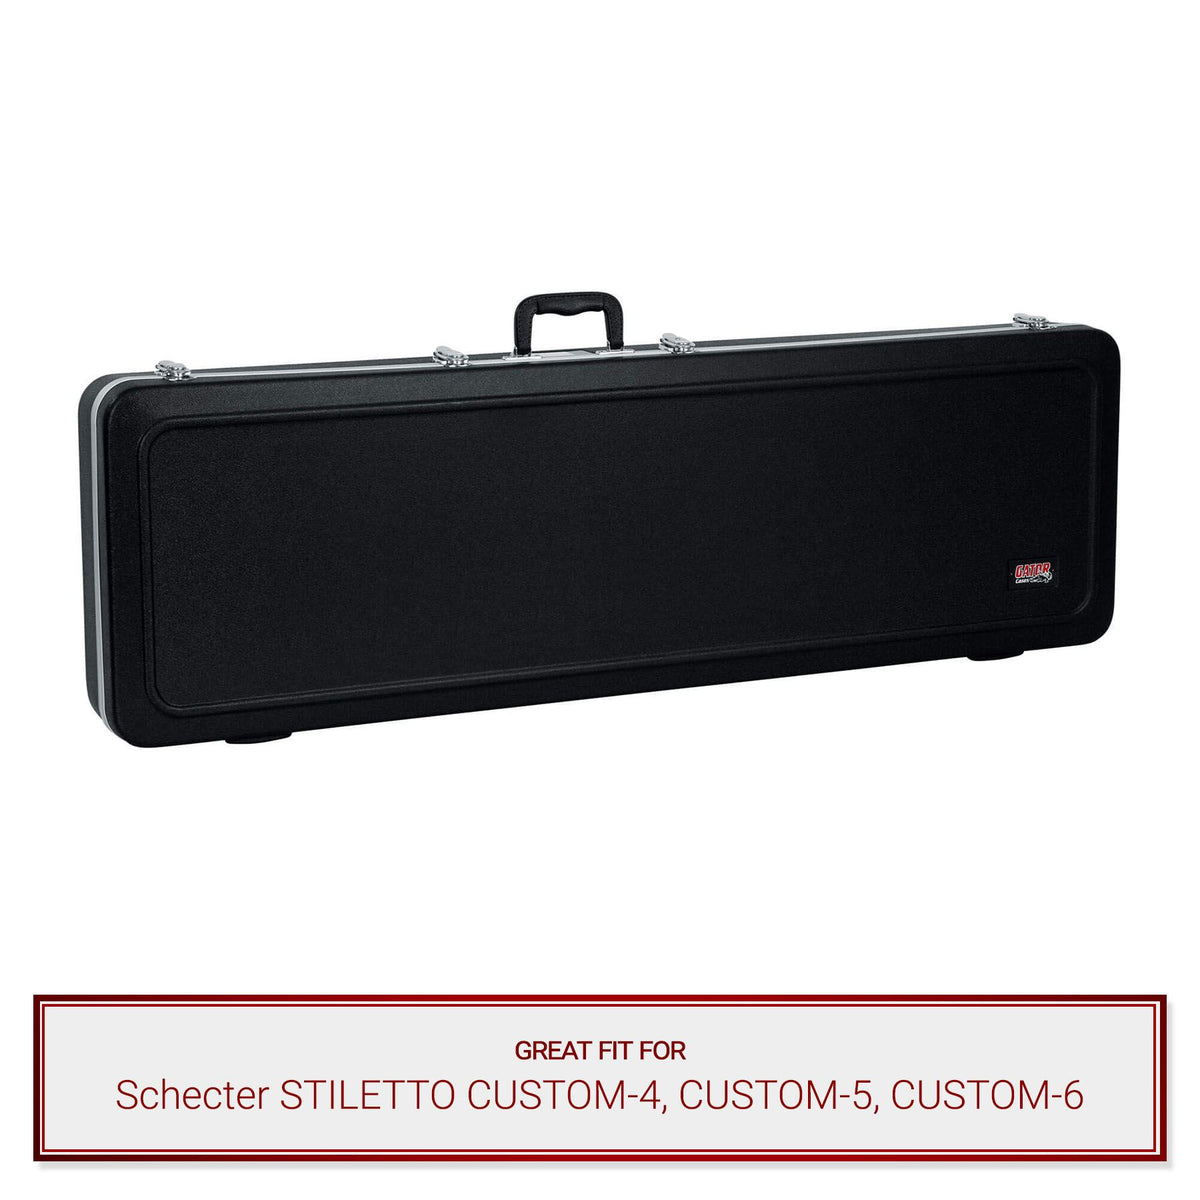 Gator Bass Guitar Case fits Schecter STILETTO CUSTOM-4, CUSTOM-5, CUSTOM-6